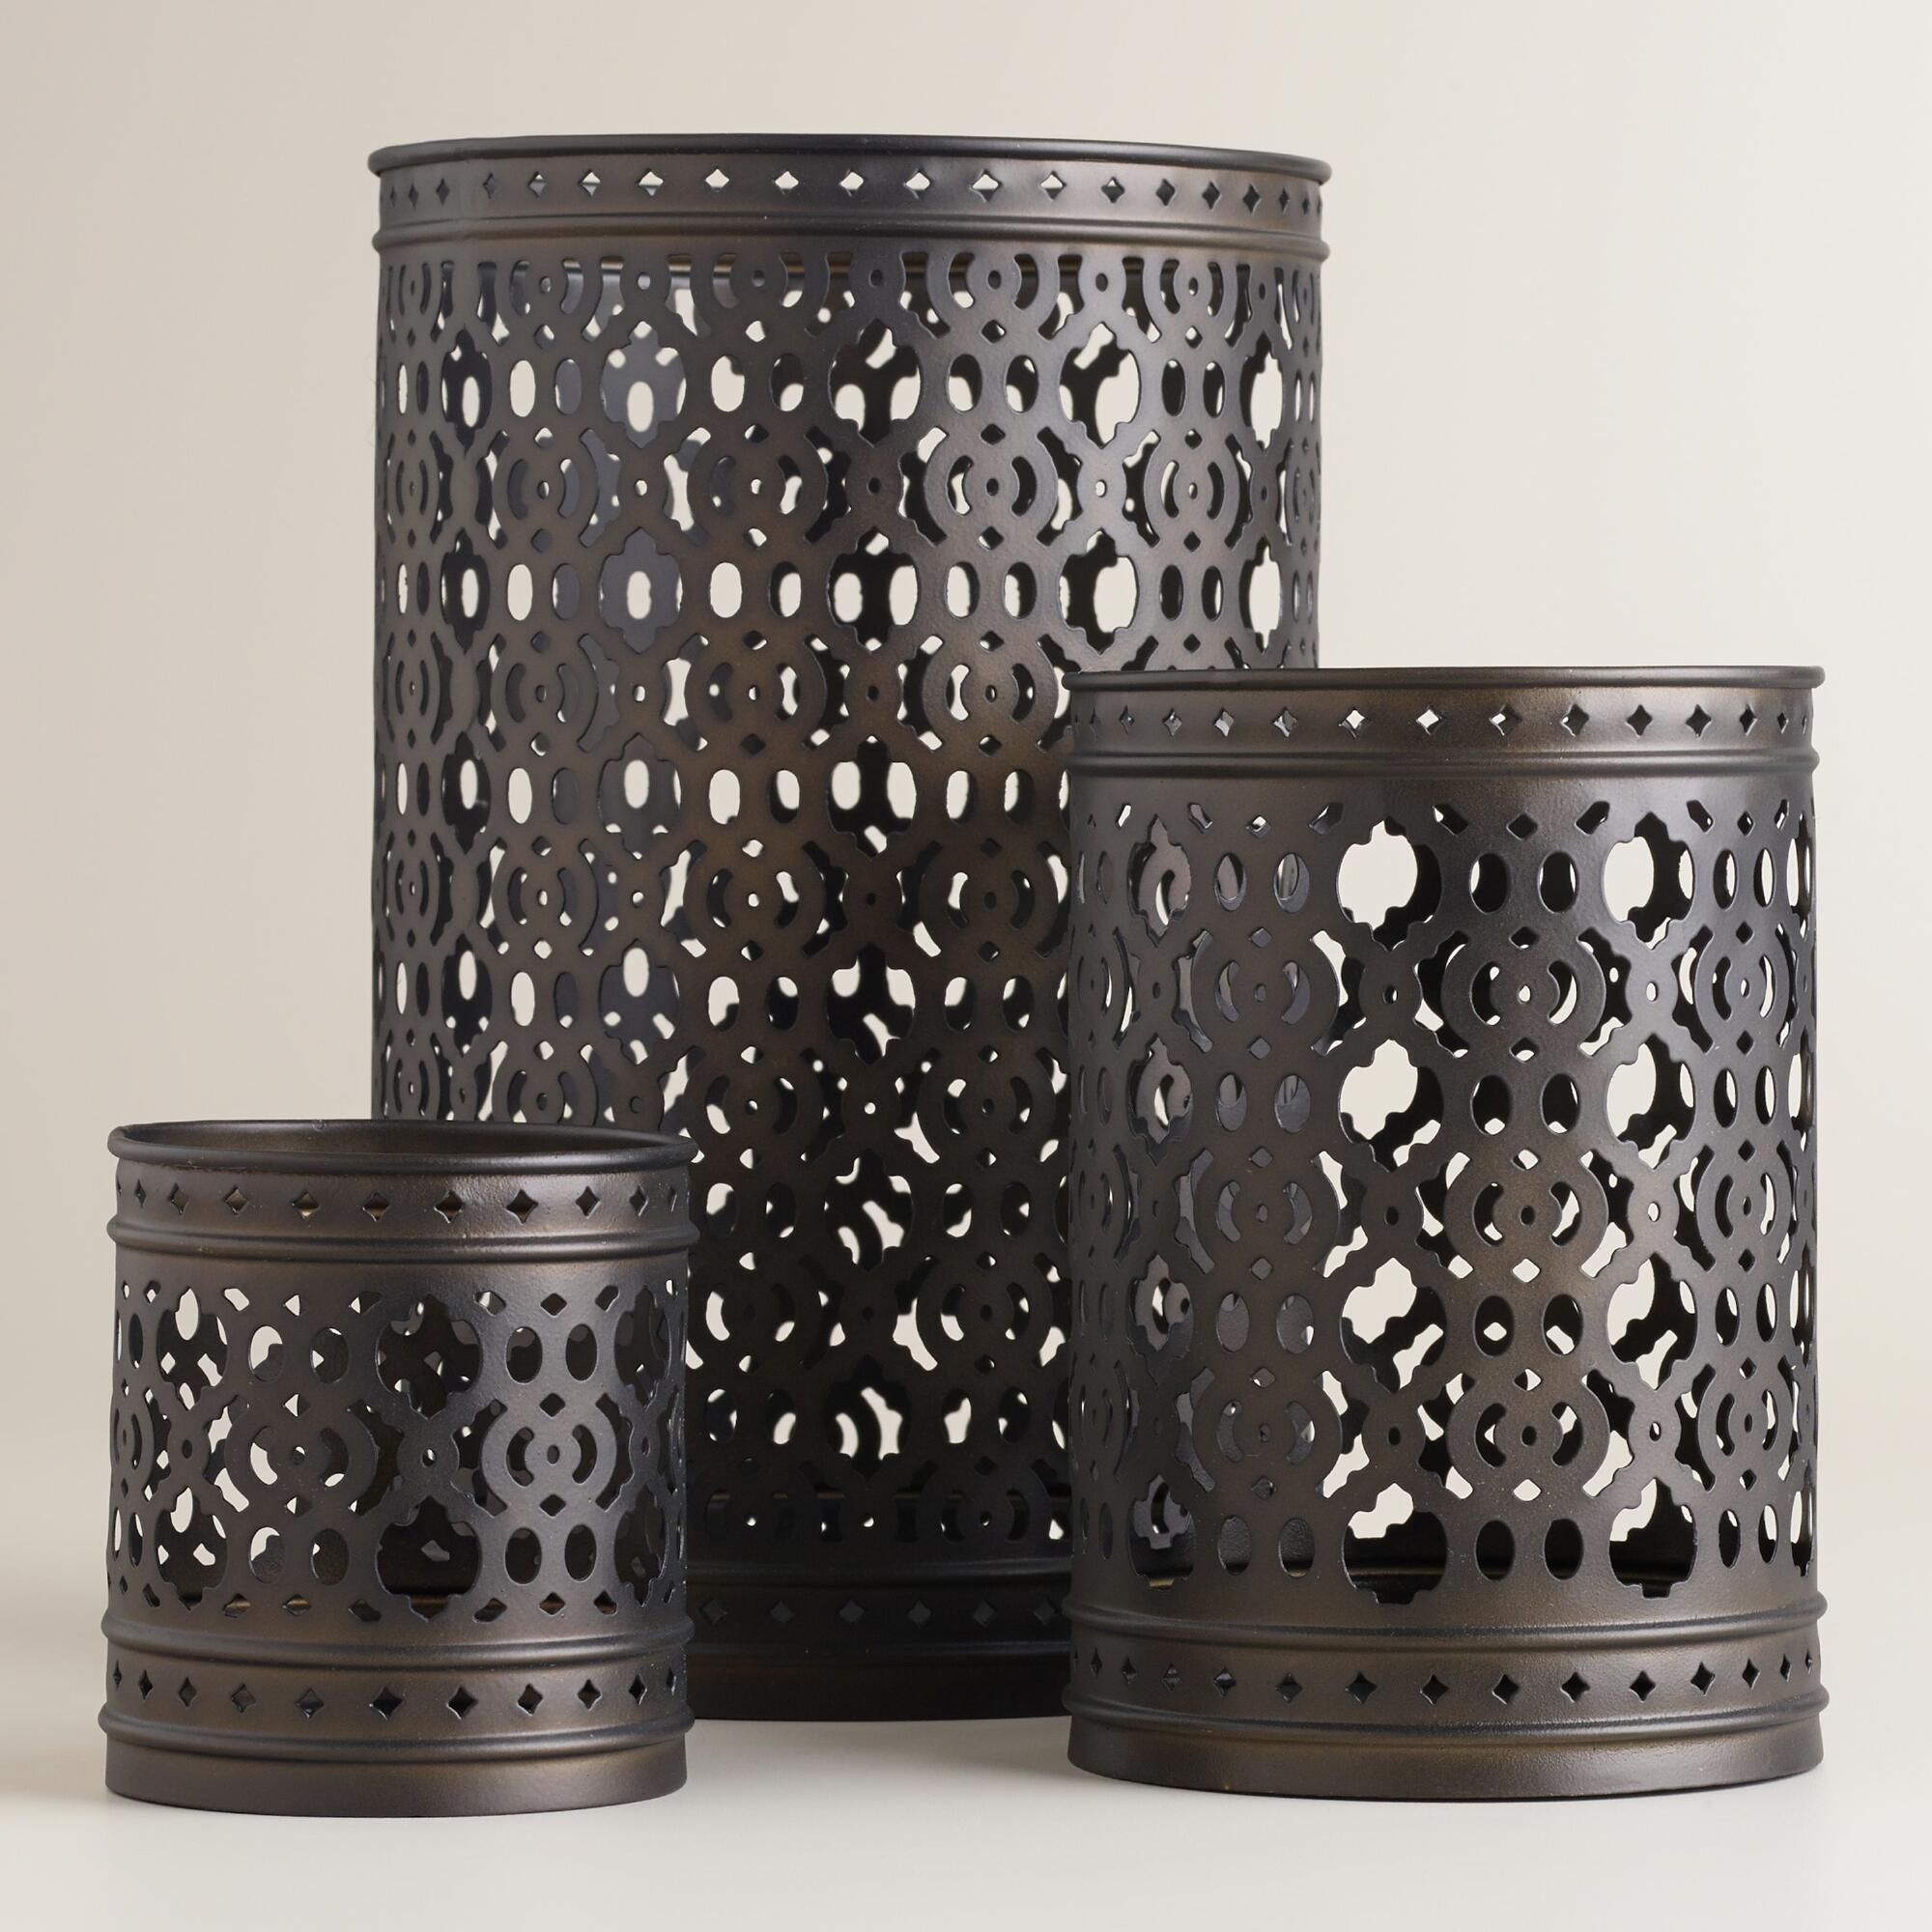 Cost Plus World Market Fall 2016 Collection: Jali Metal Hurricane Candleholder